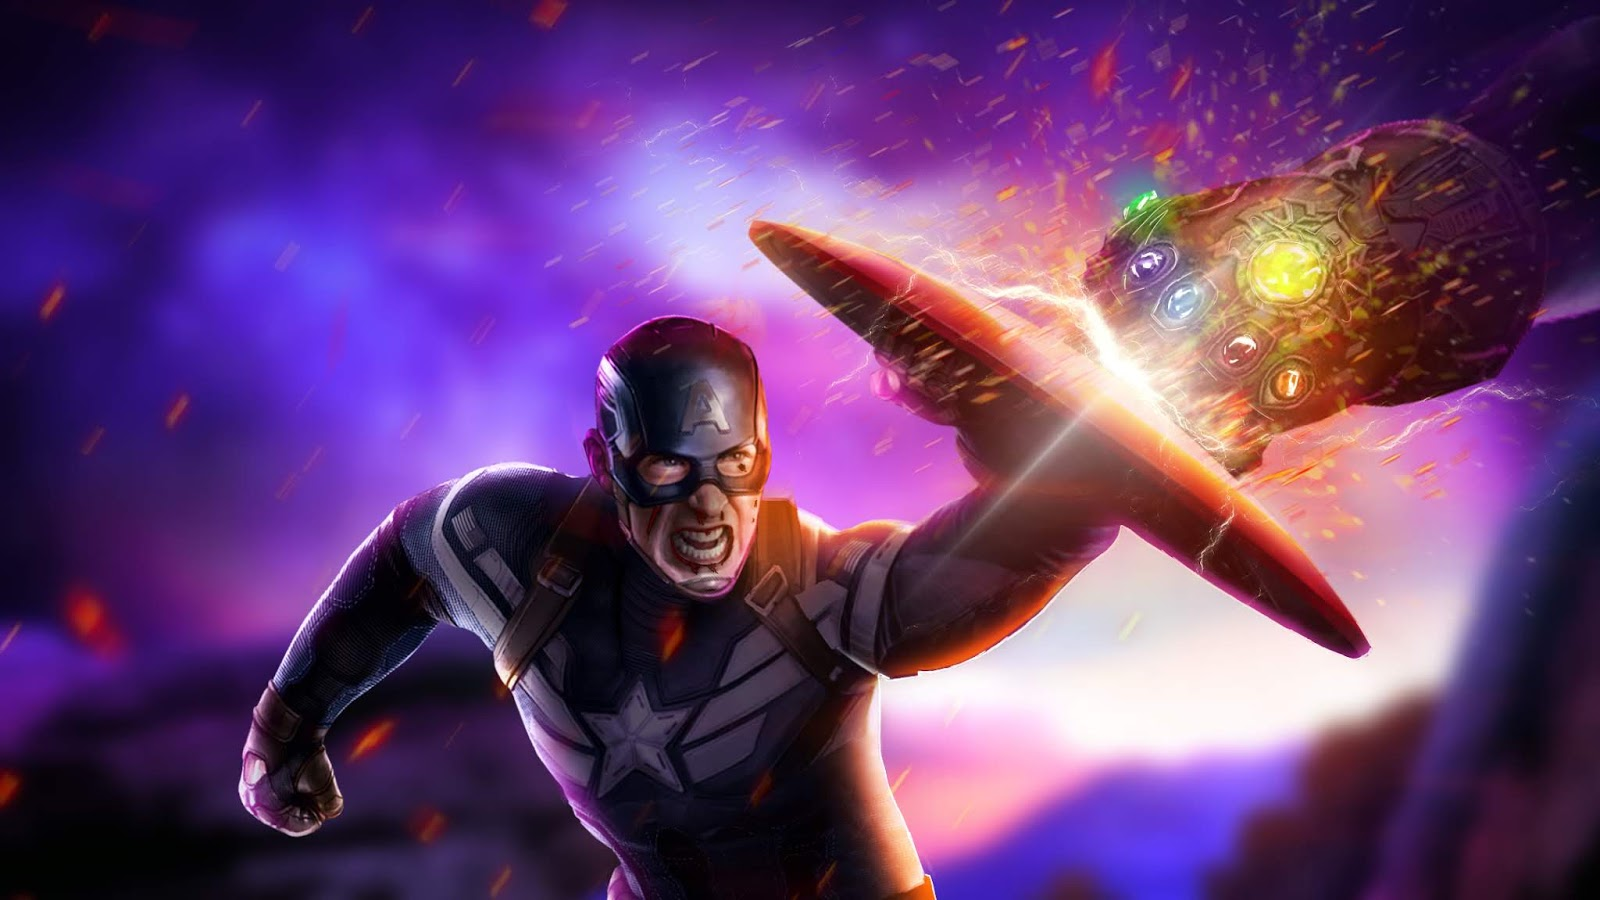 Avengers End Game Wallpapers In Hd 4k Ft Captain America Iron Man